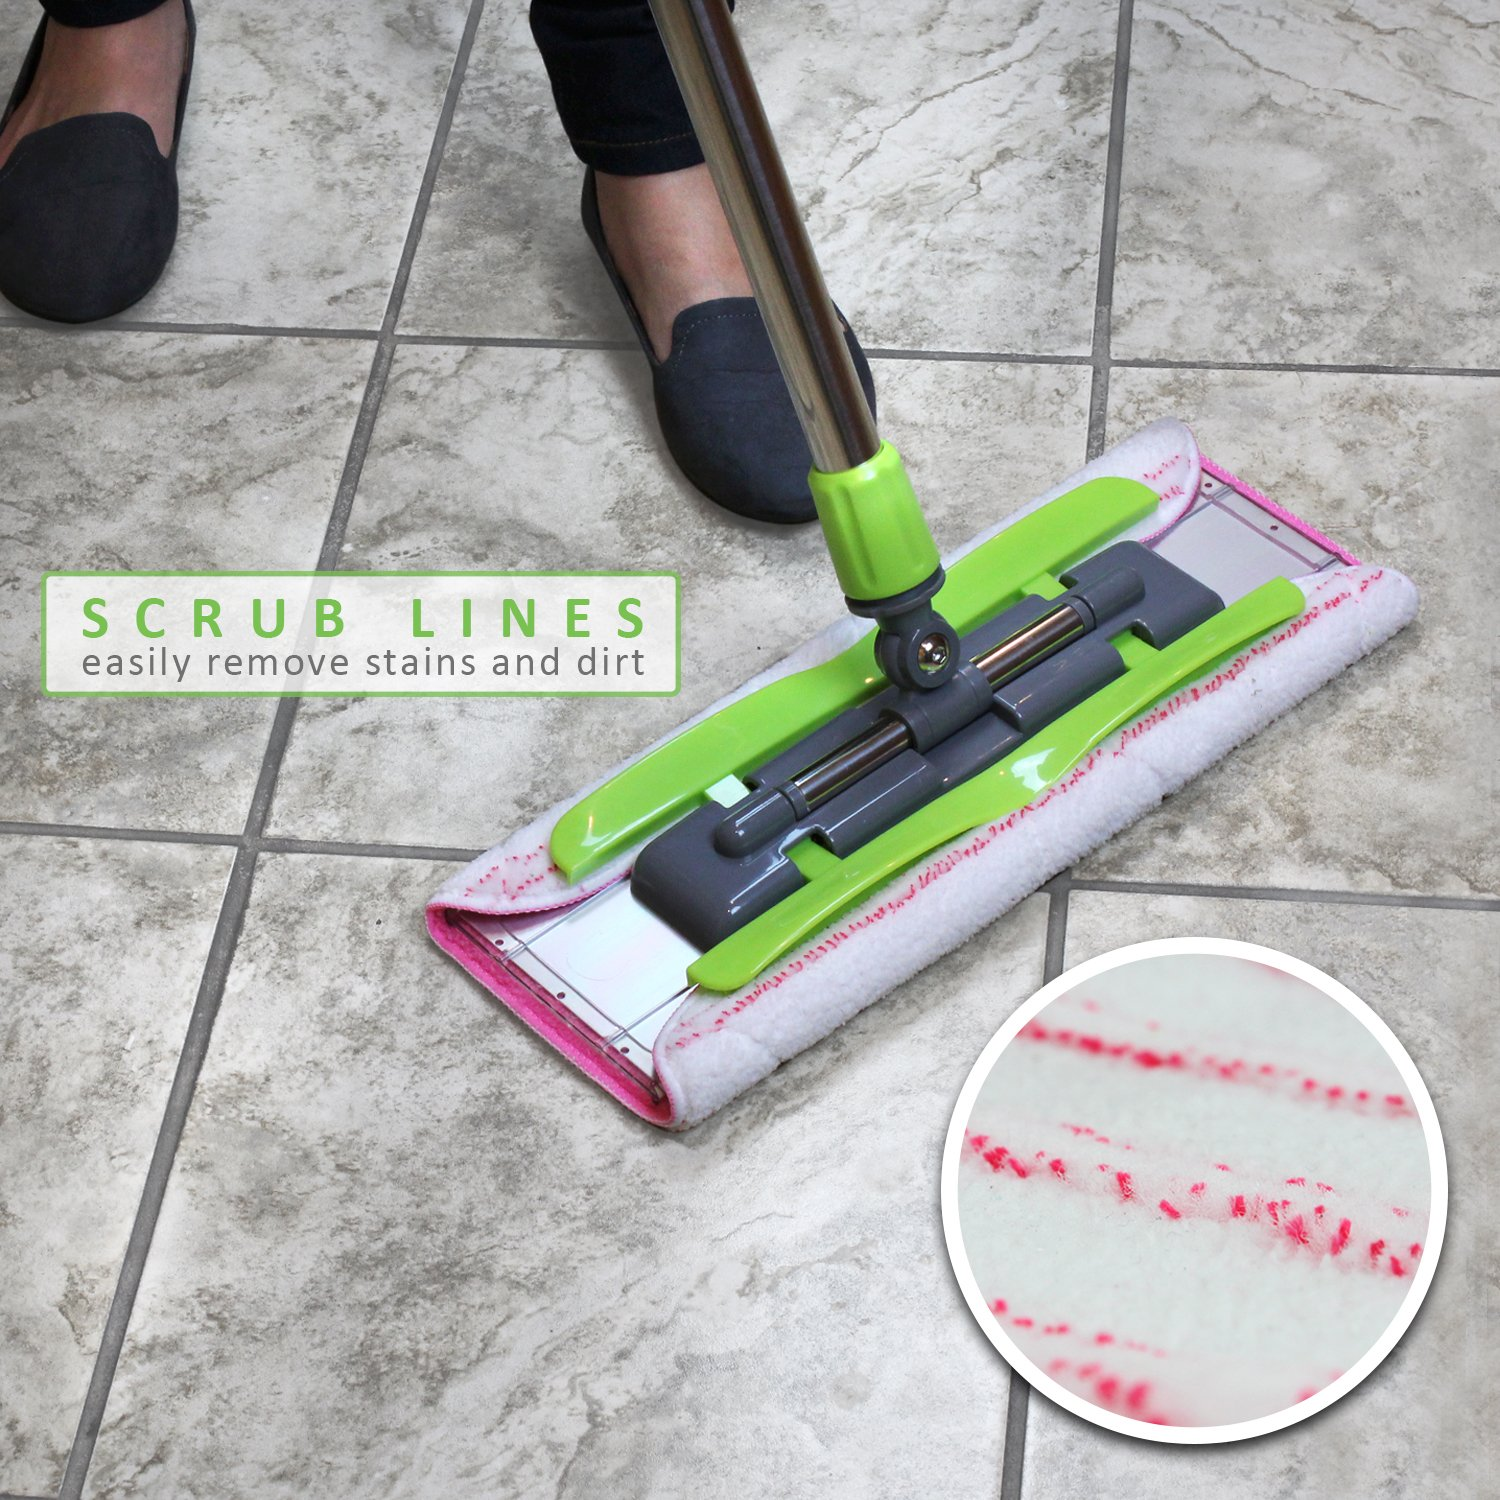 LINKYO Microfiber Hardwood Floor Mop - 3 Reusable Flat Mop Pads and Extension Included, for Wet or Dry Floor Cleaning by LINKYO (Image #2)